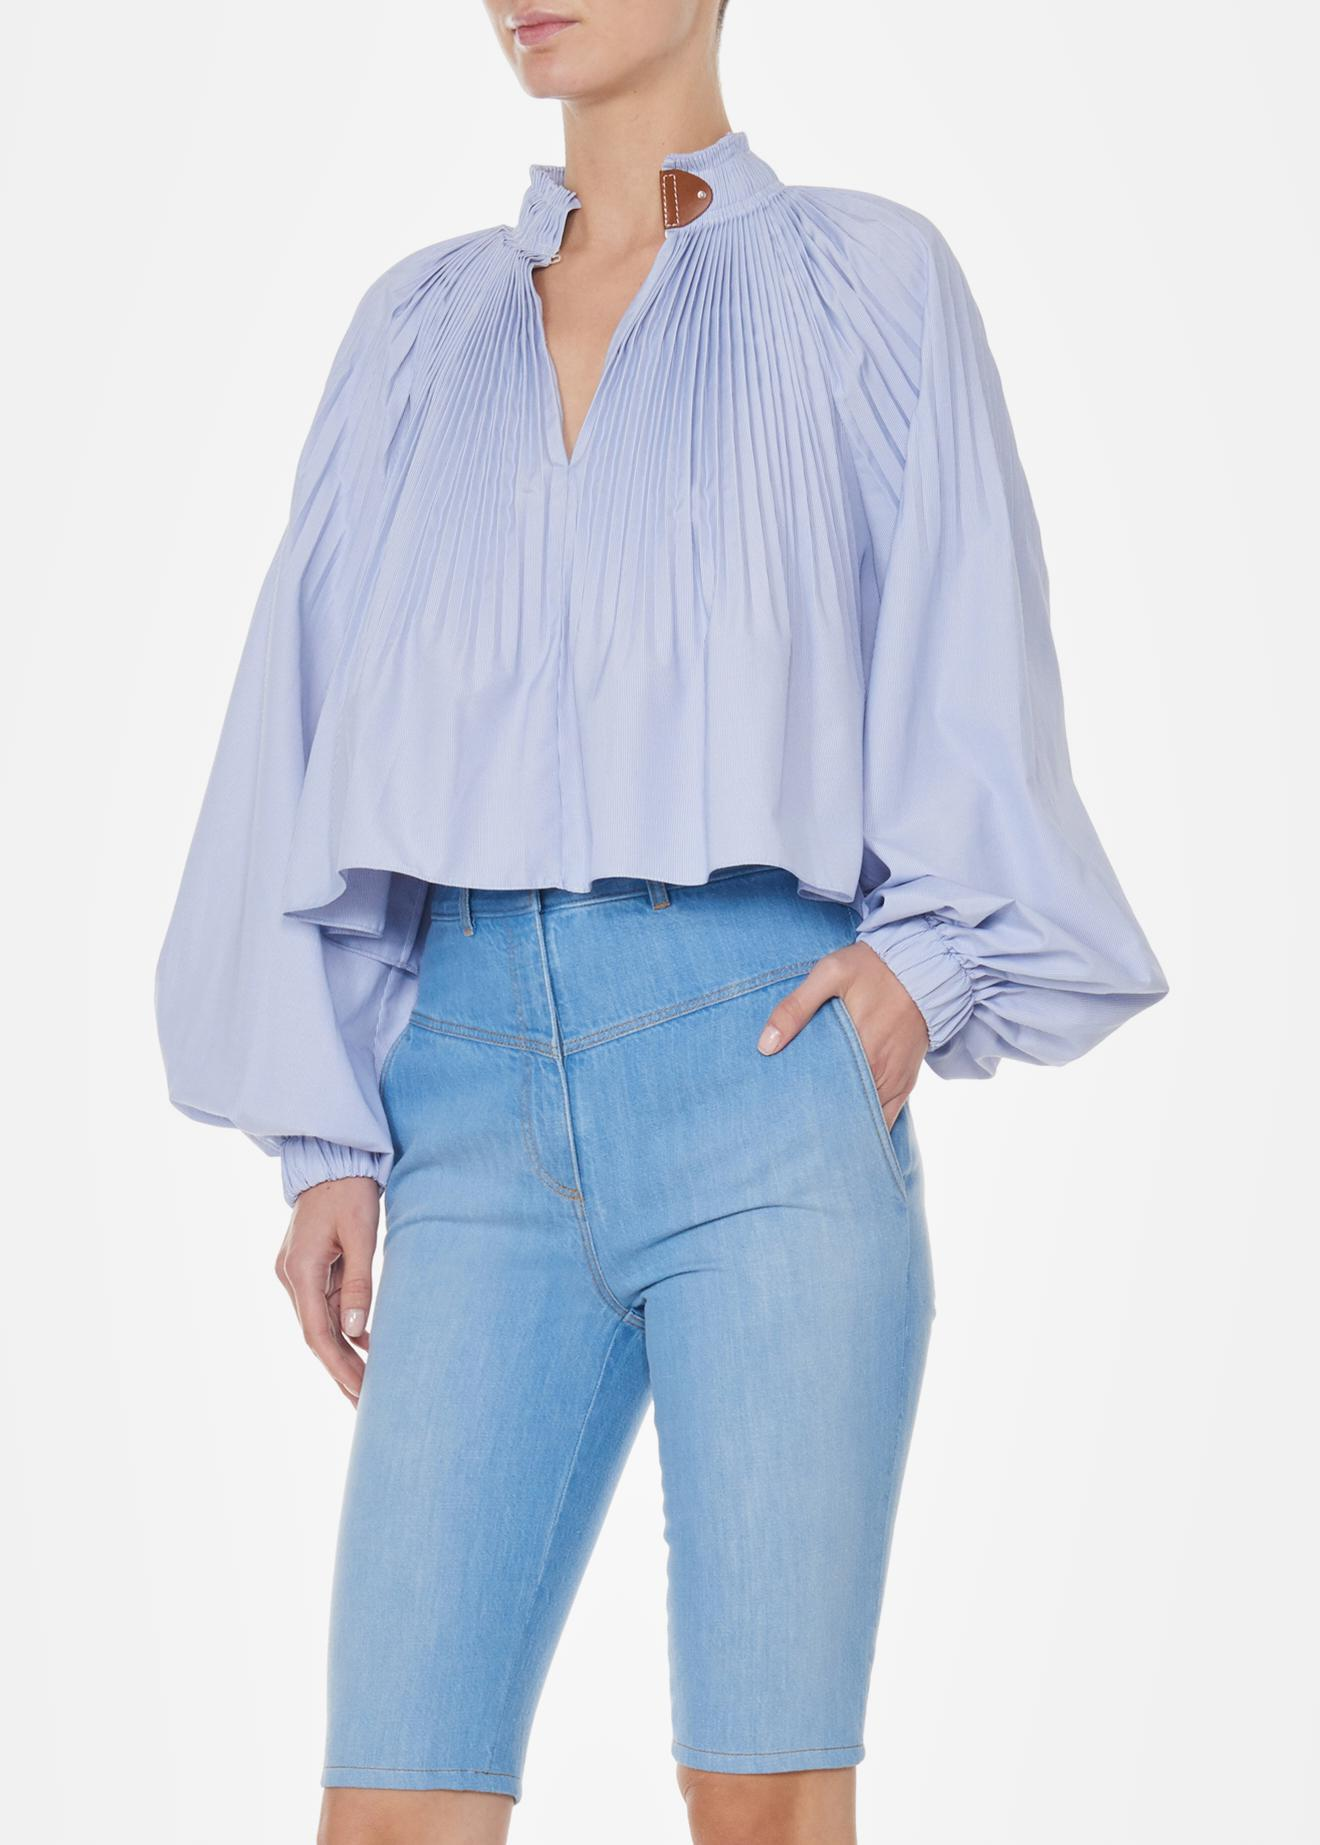 7a3181b5aa59aa Tibi Isabelle Shirting Cropped Edwardian Top in Blue - Lyst